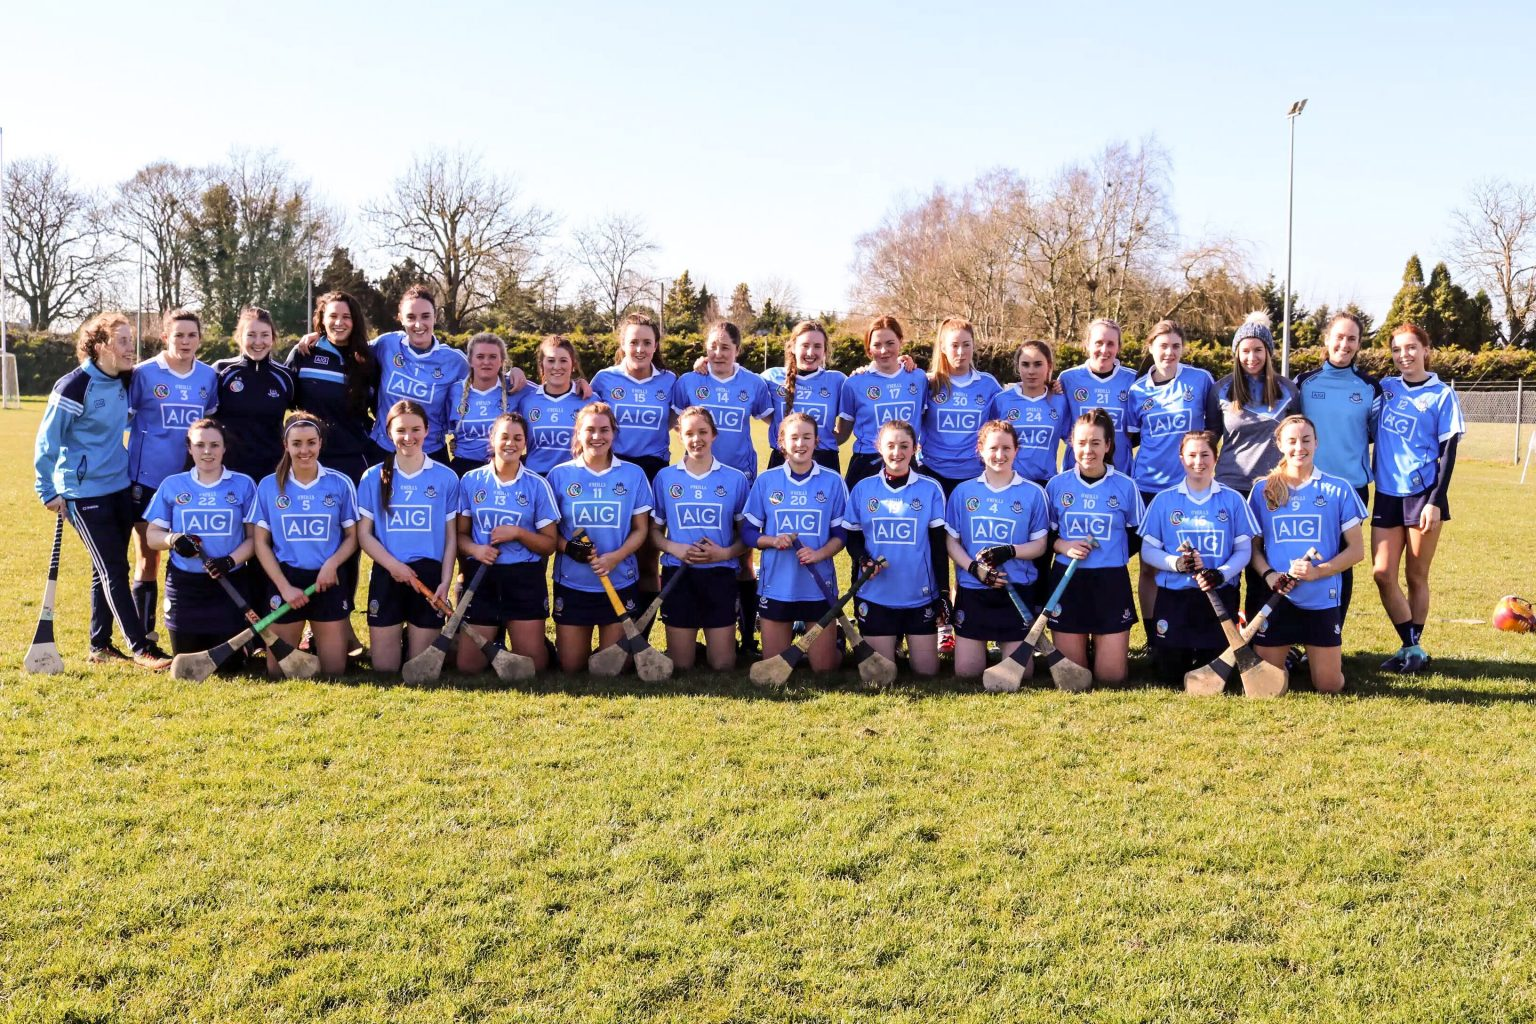 Squad photo of the Dublin Premier Junior Camogie Squad in sky blue jerseys and navy skorts who will claim an All Ireland championship semi final spot with victory over Roscommon